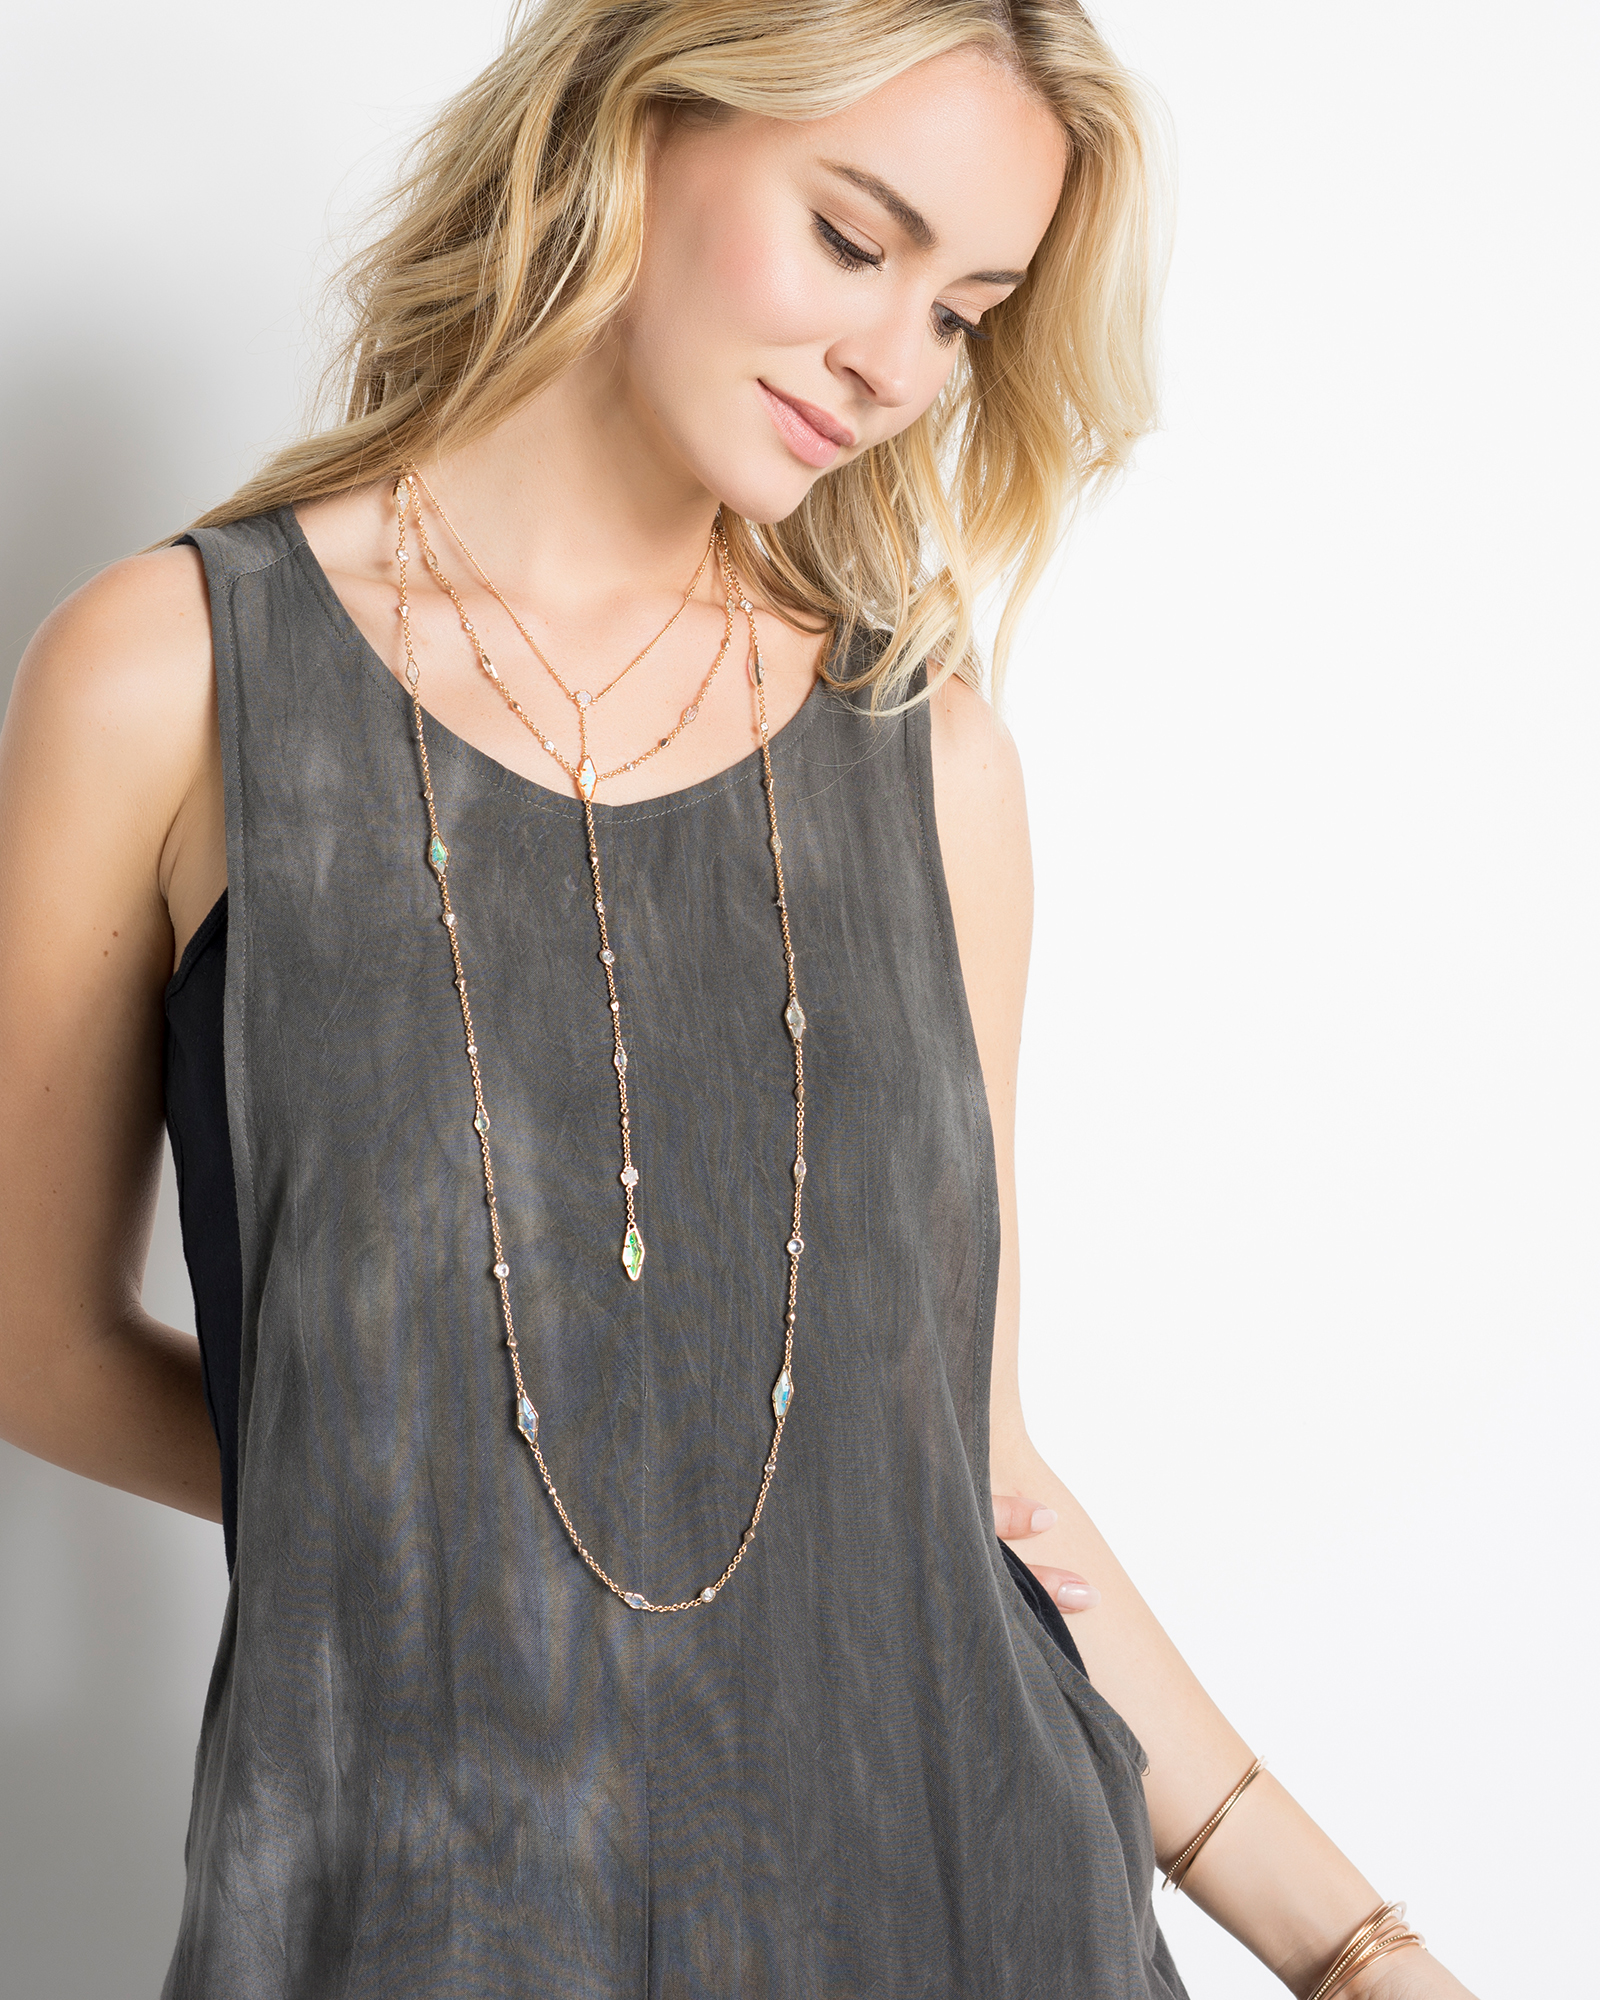 Zuly Long Necklace in Radiant